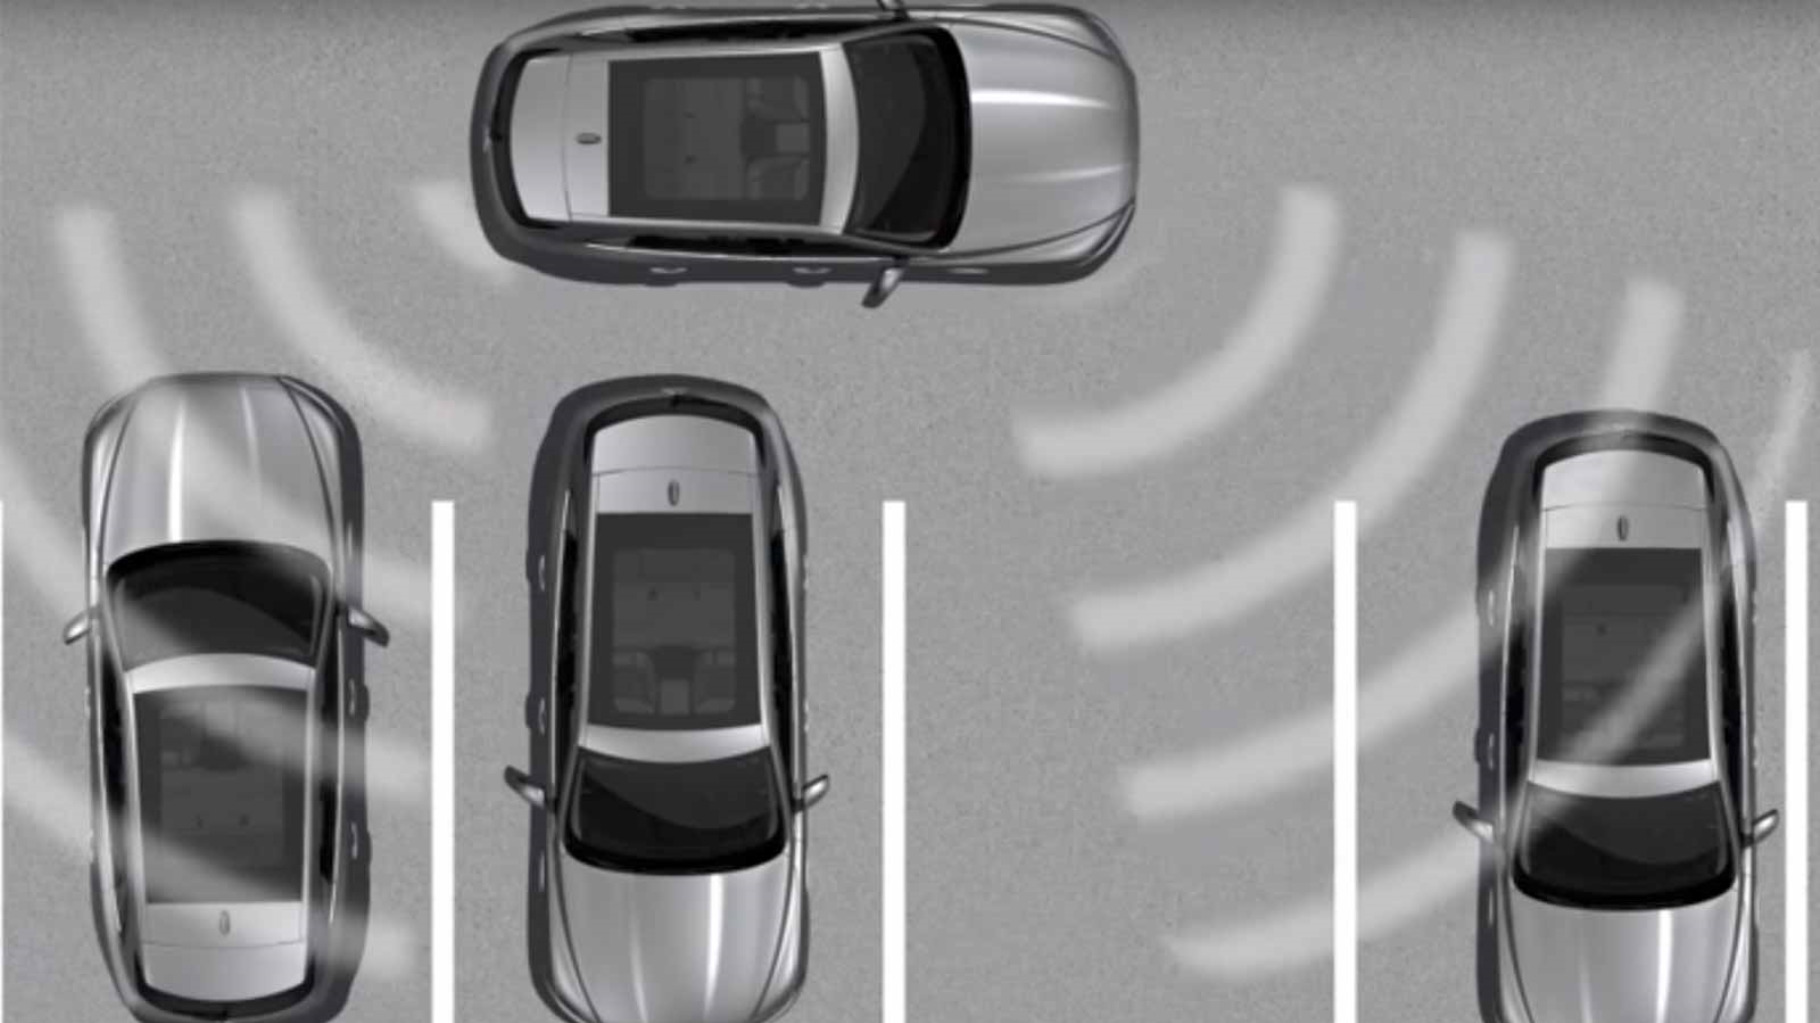 Jaguar F-PACE's InControl Touch: Park Assist information video.